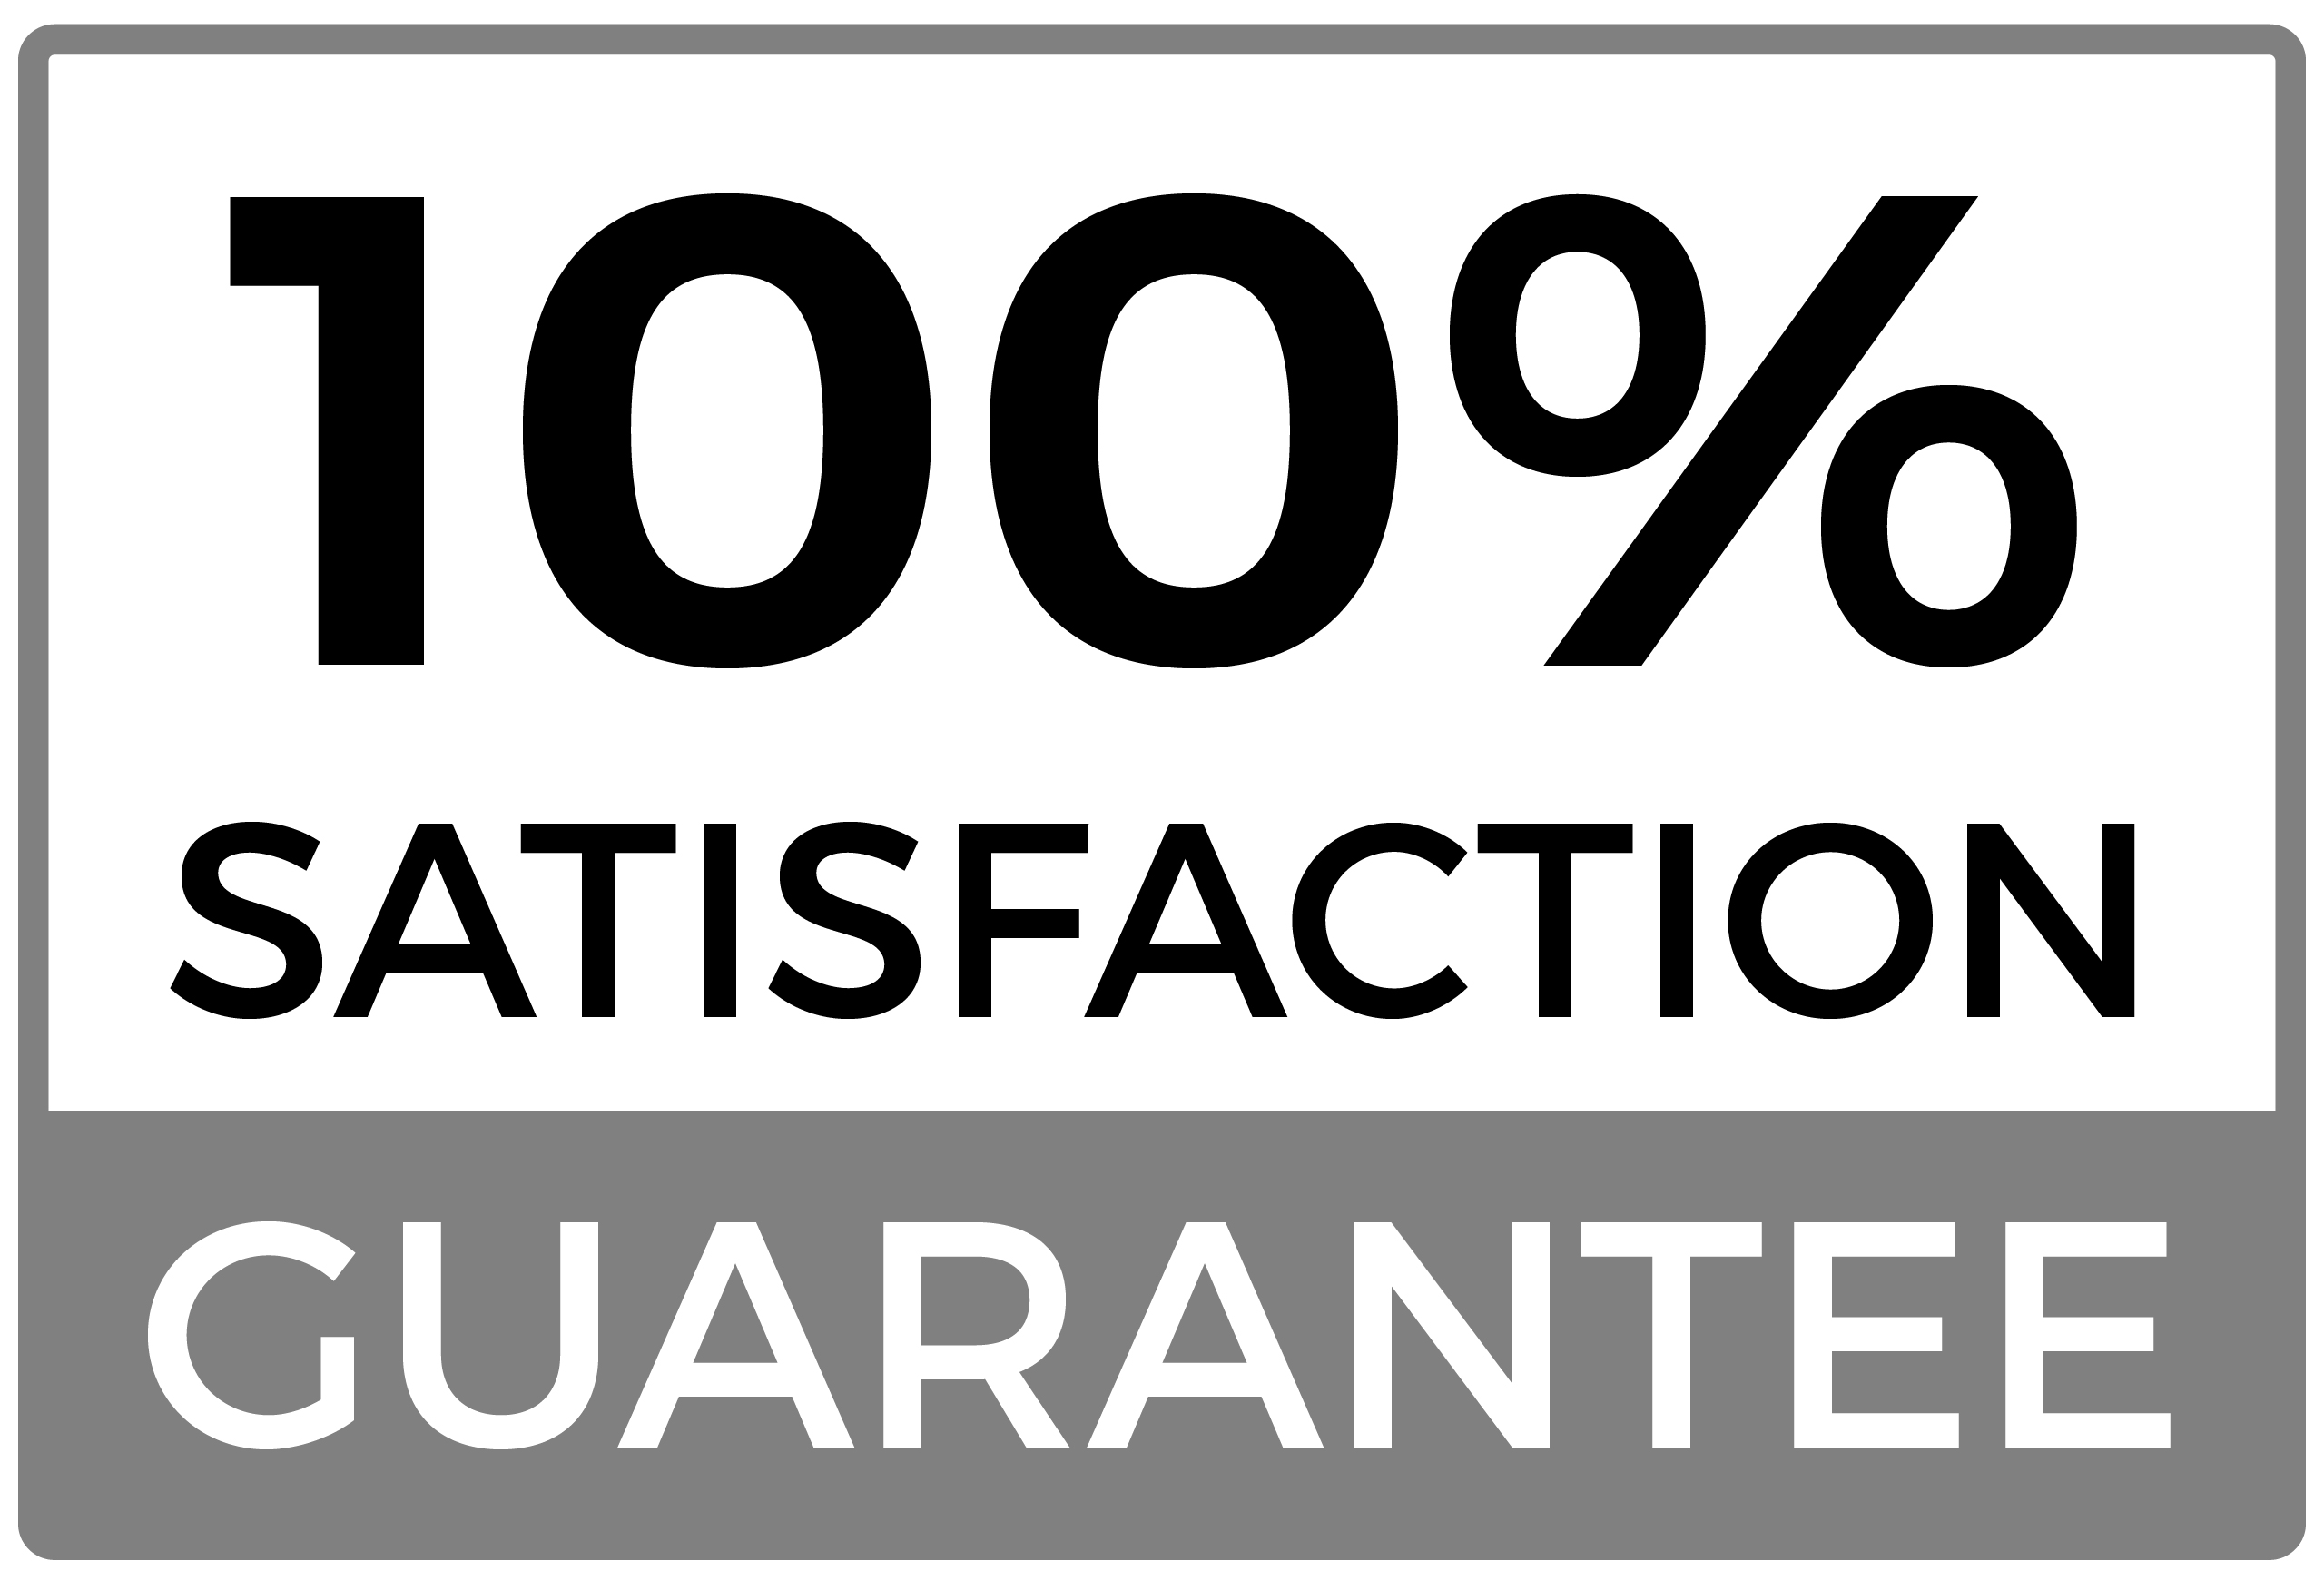 one hundred percent satisfaction guarantee icon